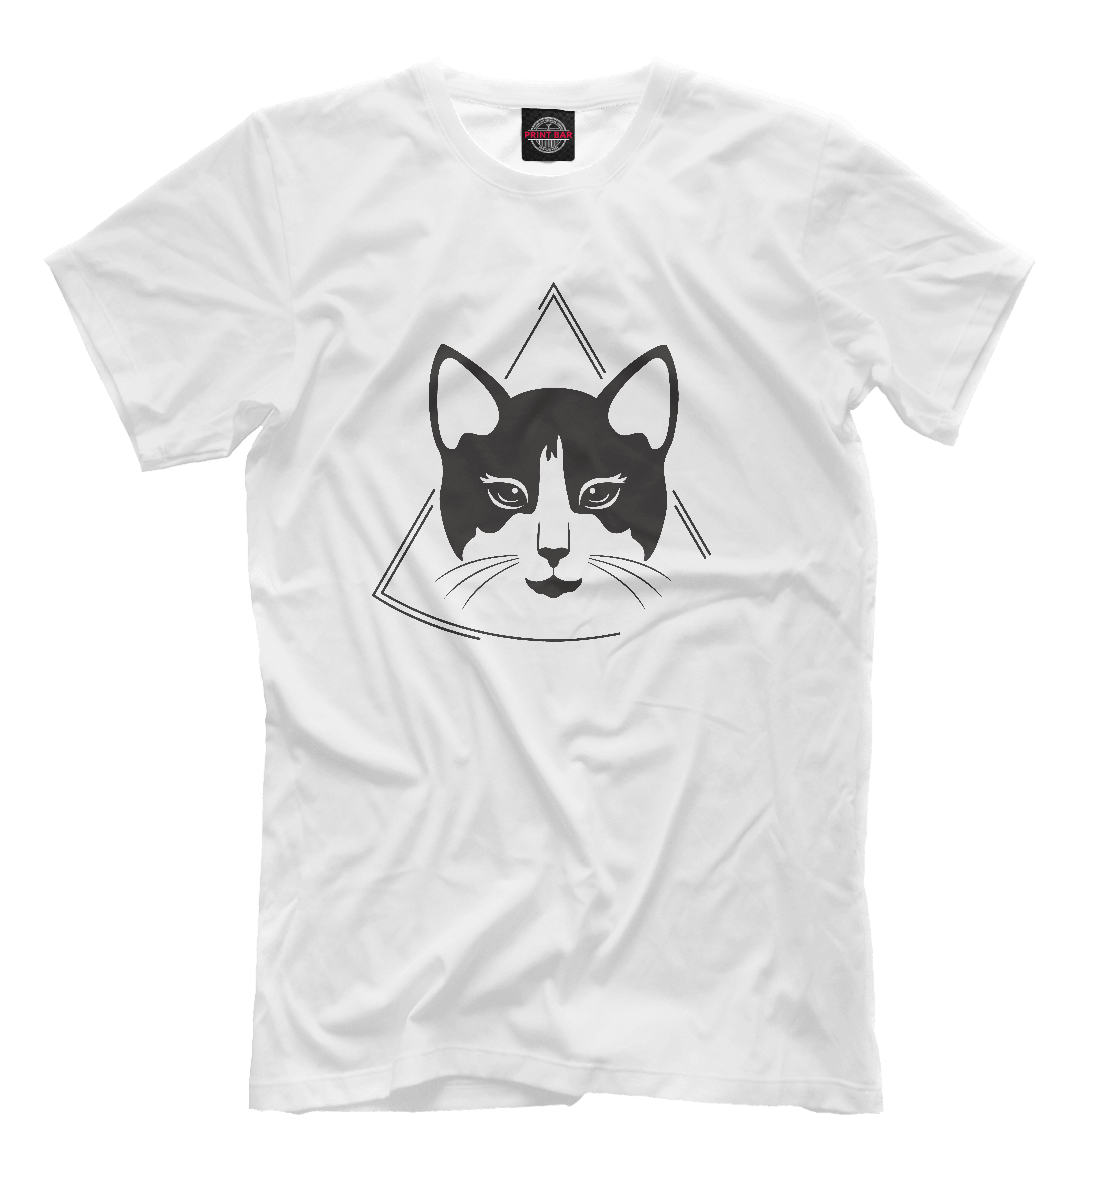 Cat and triangle